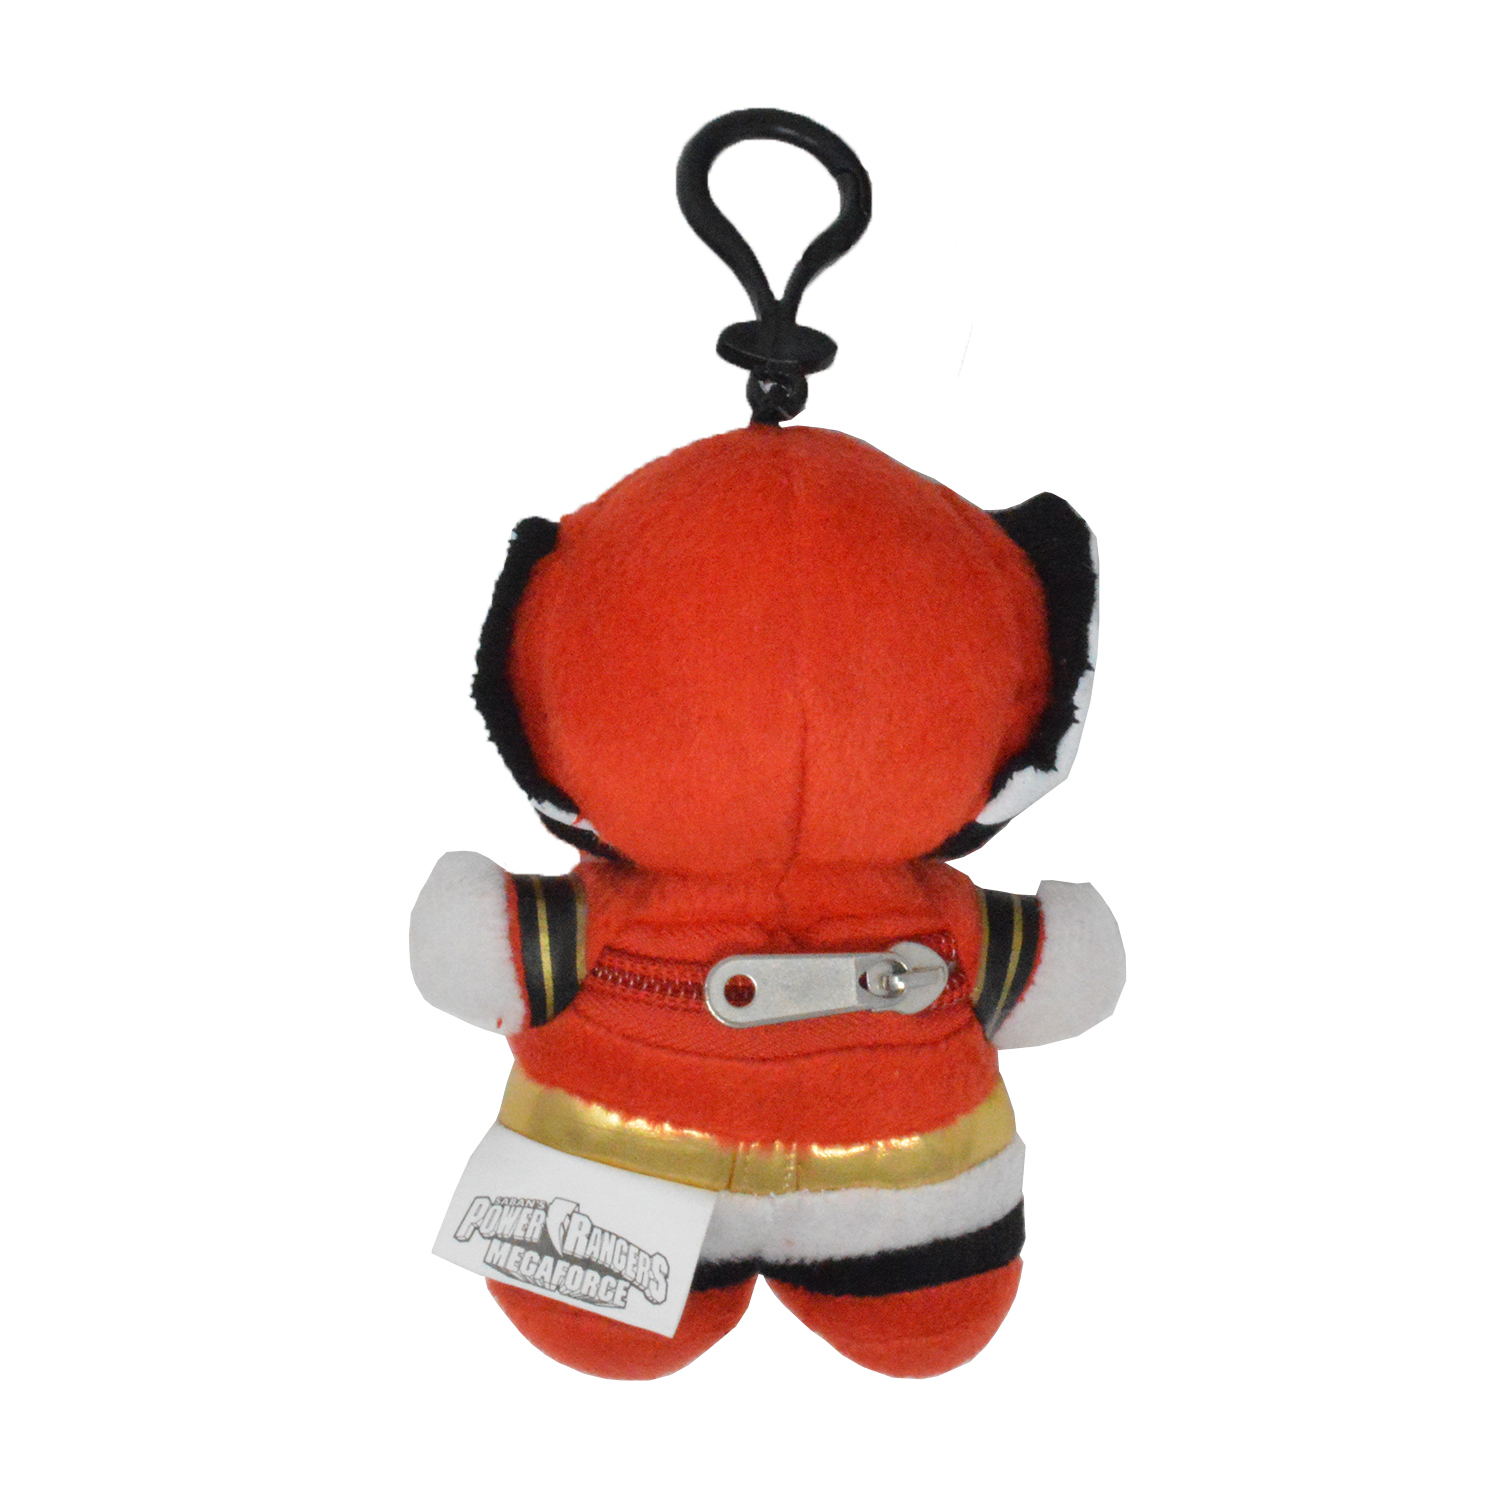 Cartoon-Plush-Coin-Clip-Toy-Bag-with-Zipper-for-Backpacks-Multiple-Styles thumbnail 28